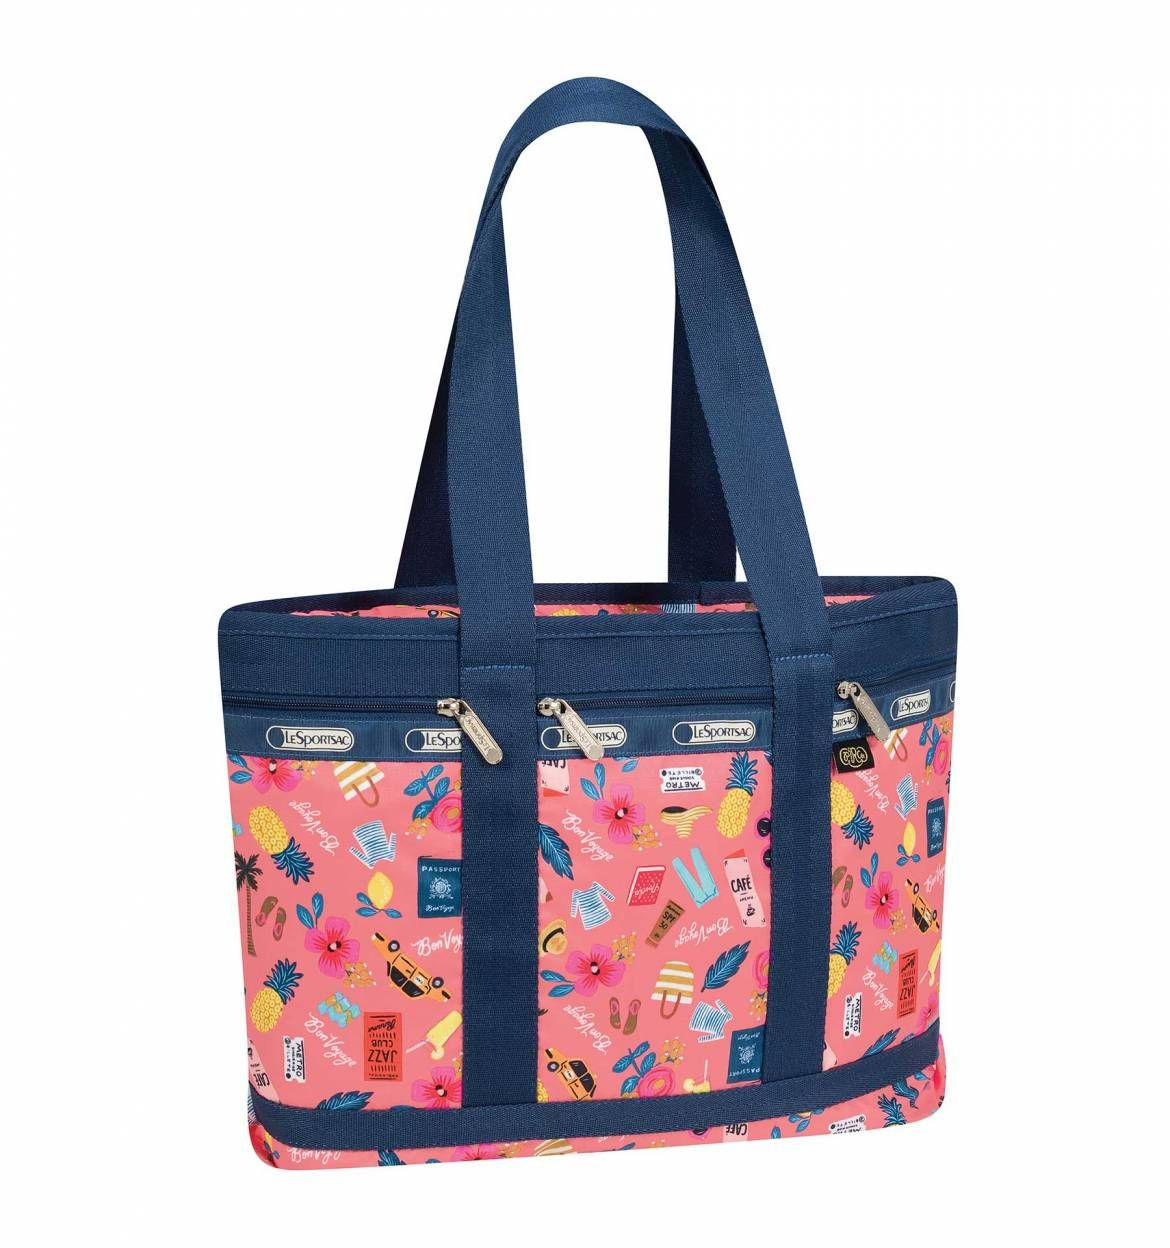 Everyday Tropical Voyage Print Medium Travel Tote By Lesportsac 98 At Paper Company